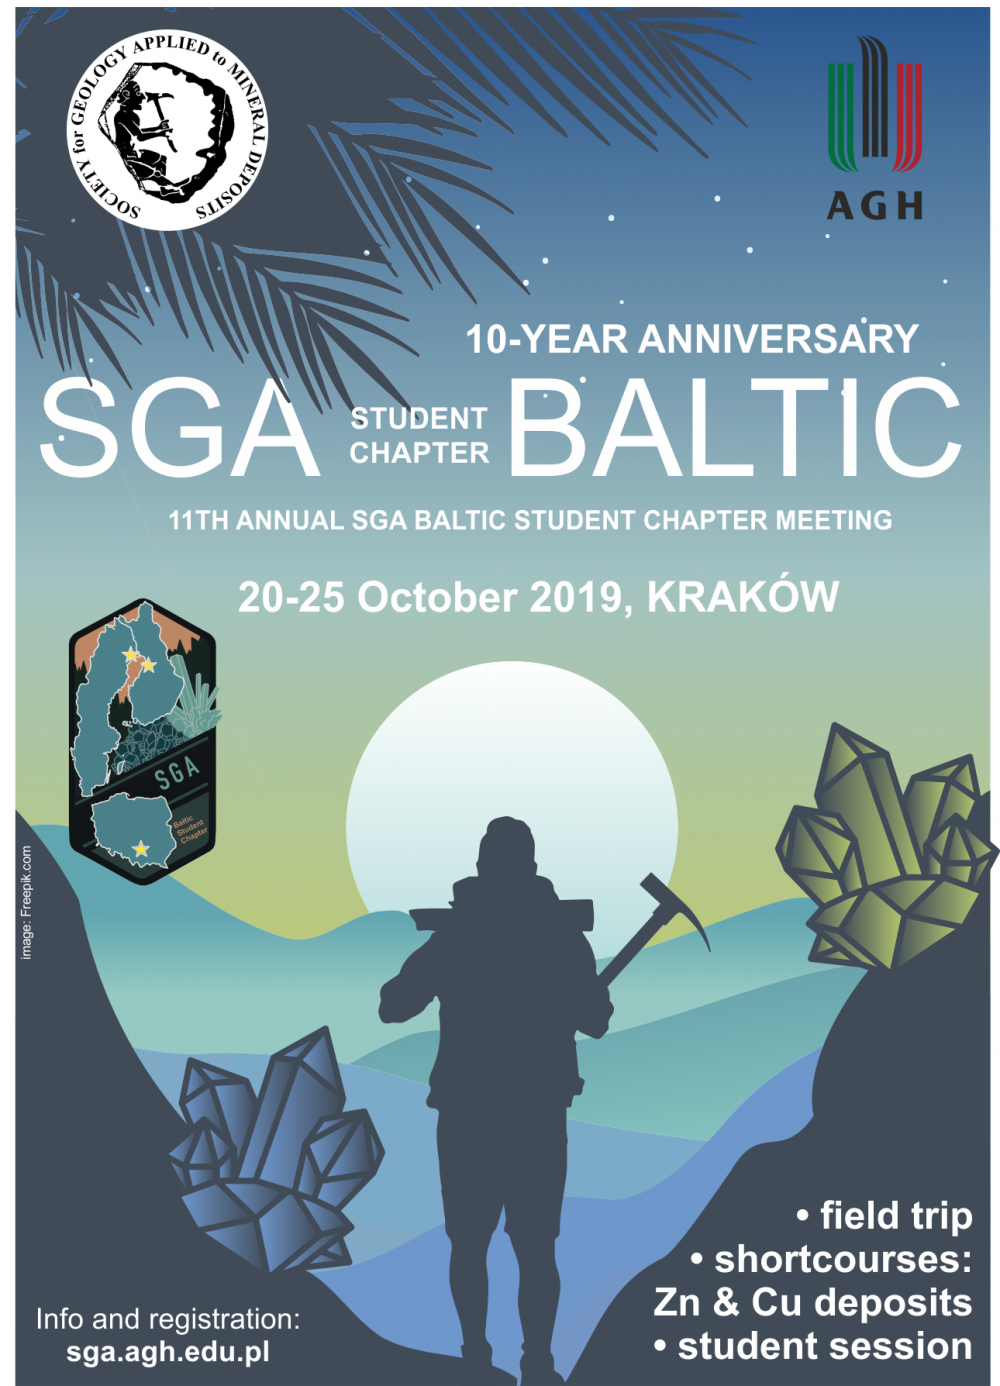 10-year anniversary of SGA Baltic student chapter